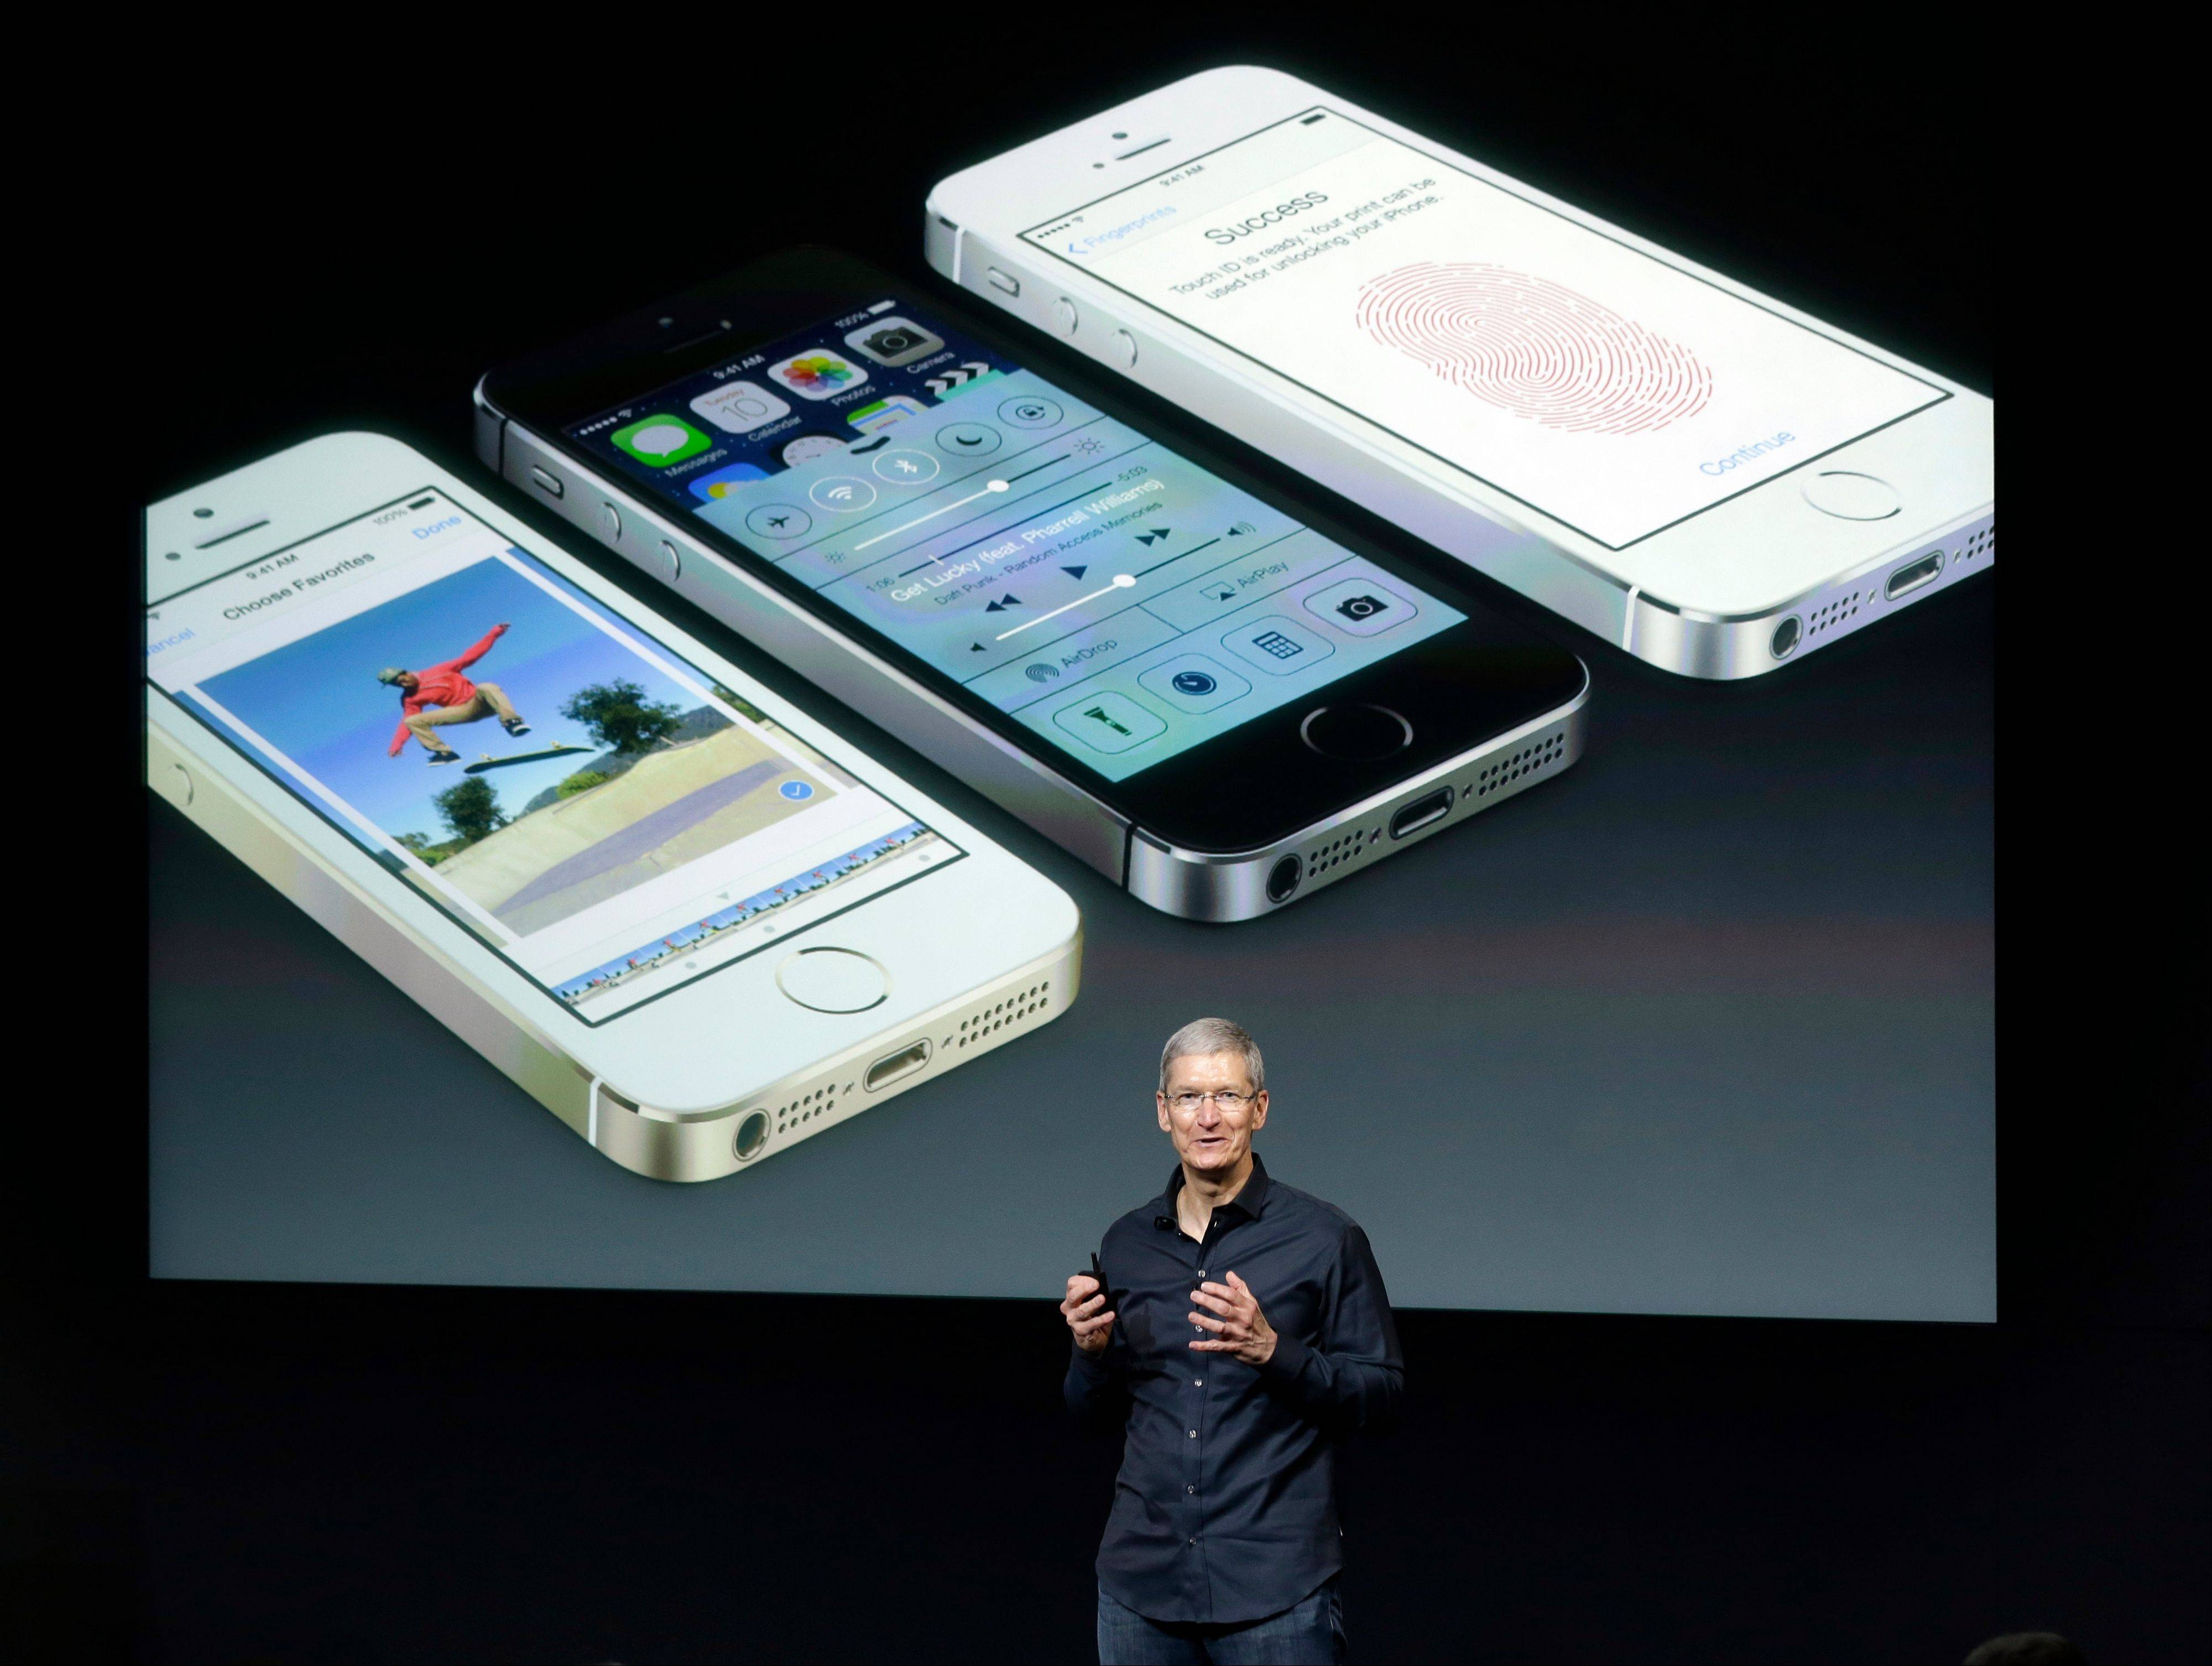 Tim Cook, CEO of Apple, speaks on stage during the introduction of the new iPhone 5s in Cupertino, Calif., Tuesday, Sept. 10, 2013.